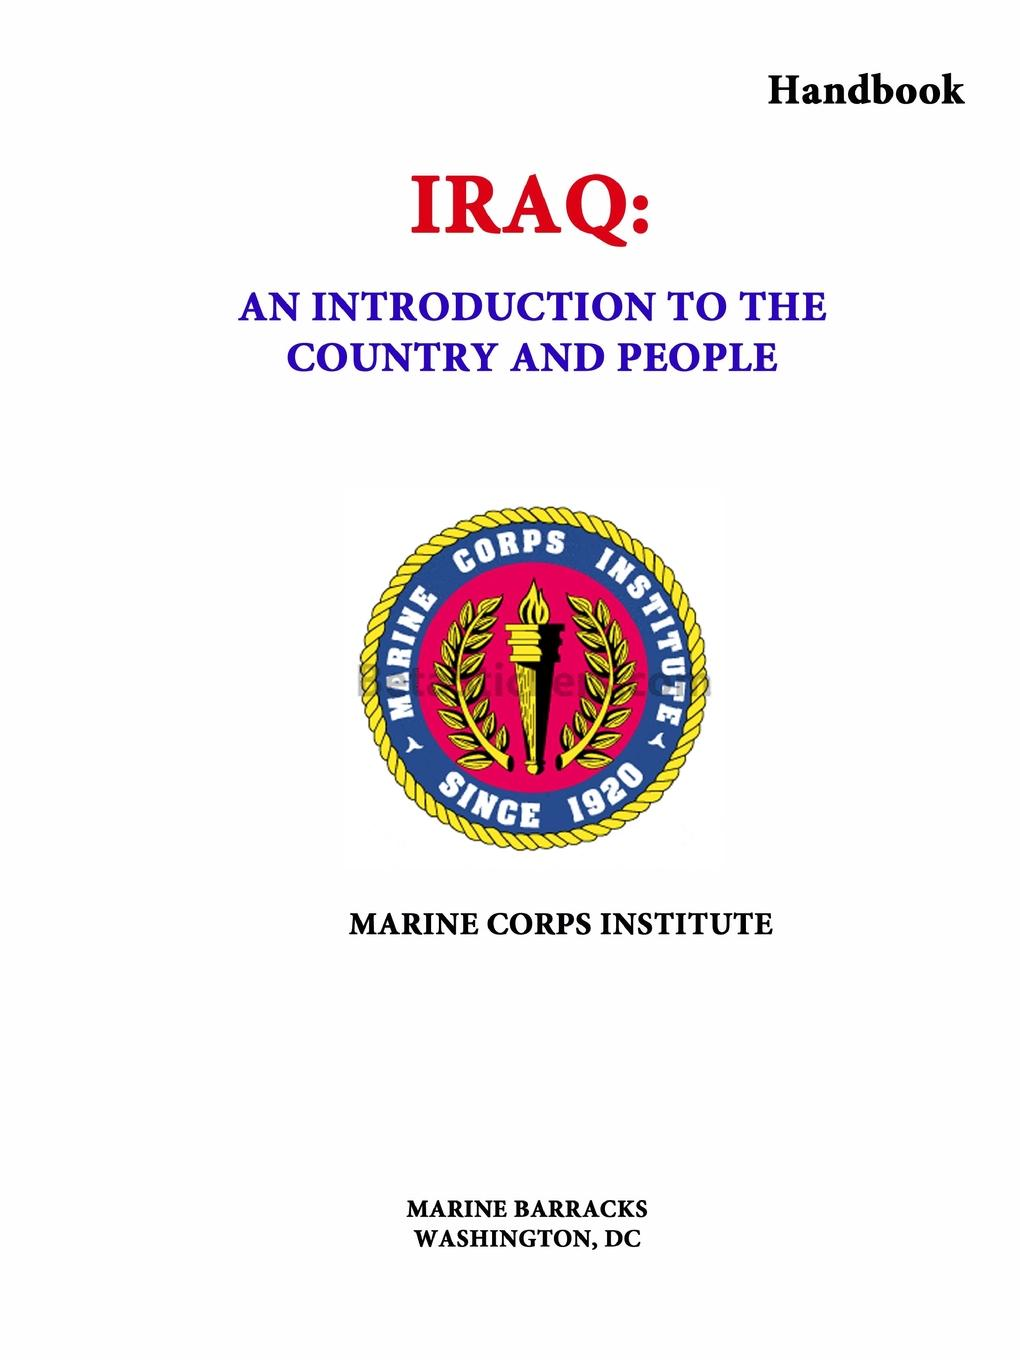 Marine Corps Institute Iraq. An Introduction to the Country and People (Handbook) thor fossen i handbook of marine craft hydrodynamics and motion control